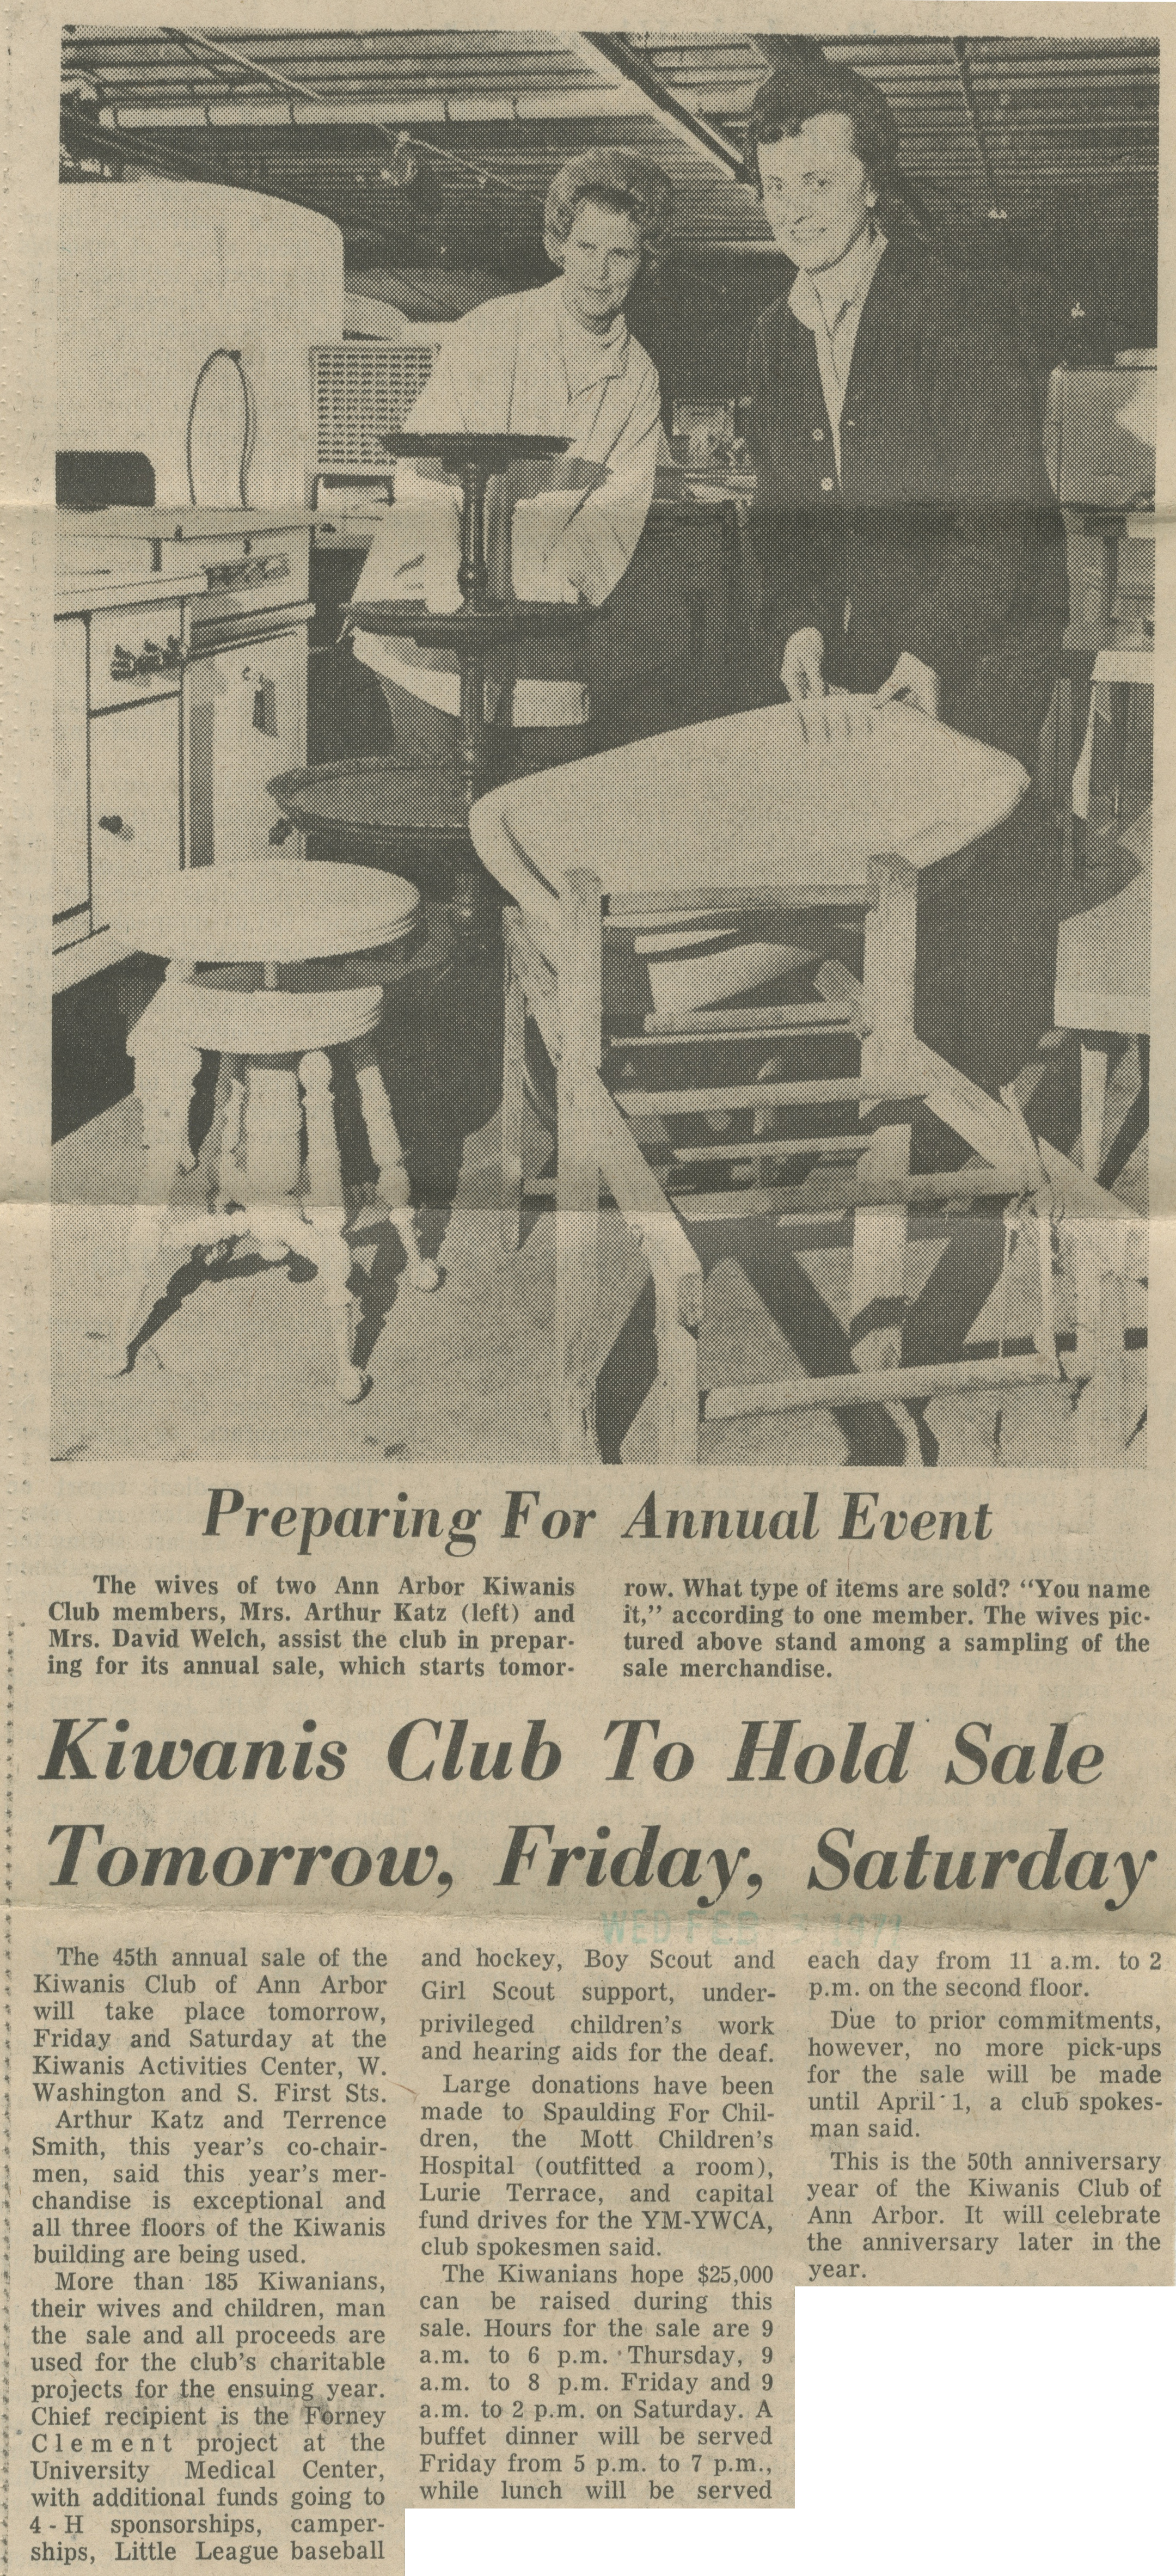 Kiwanis Club To Hold Sale Tomorrow, Friday, Saturday image